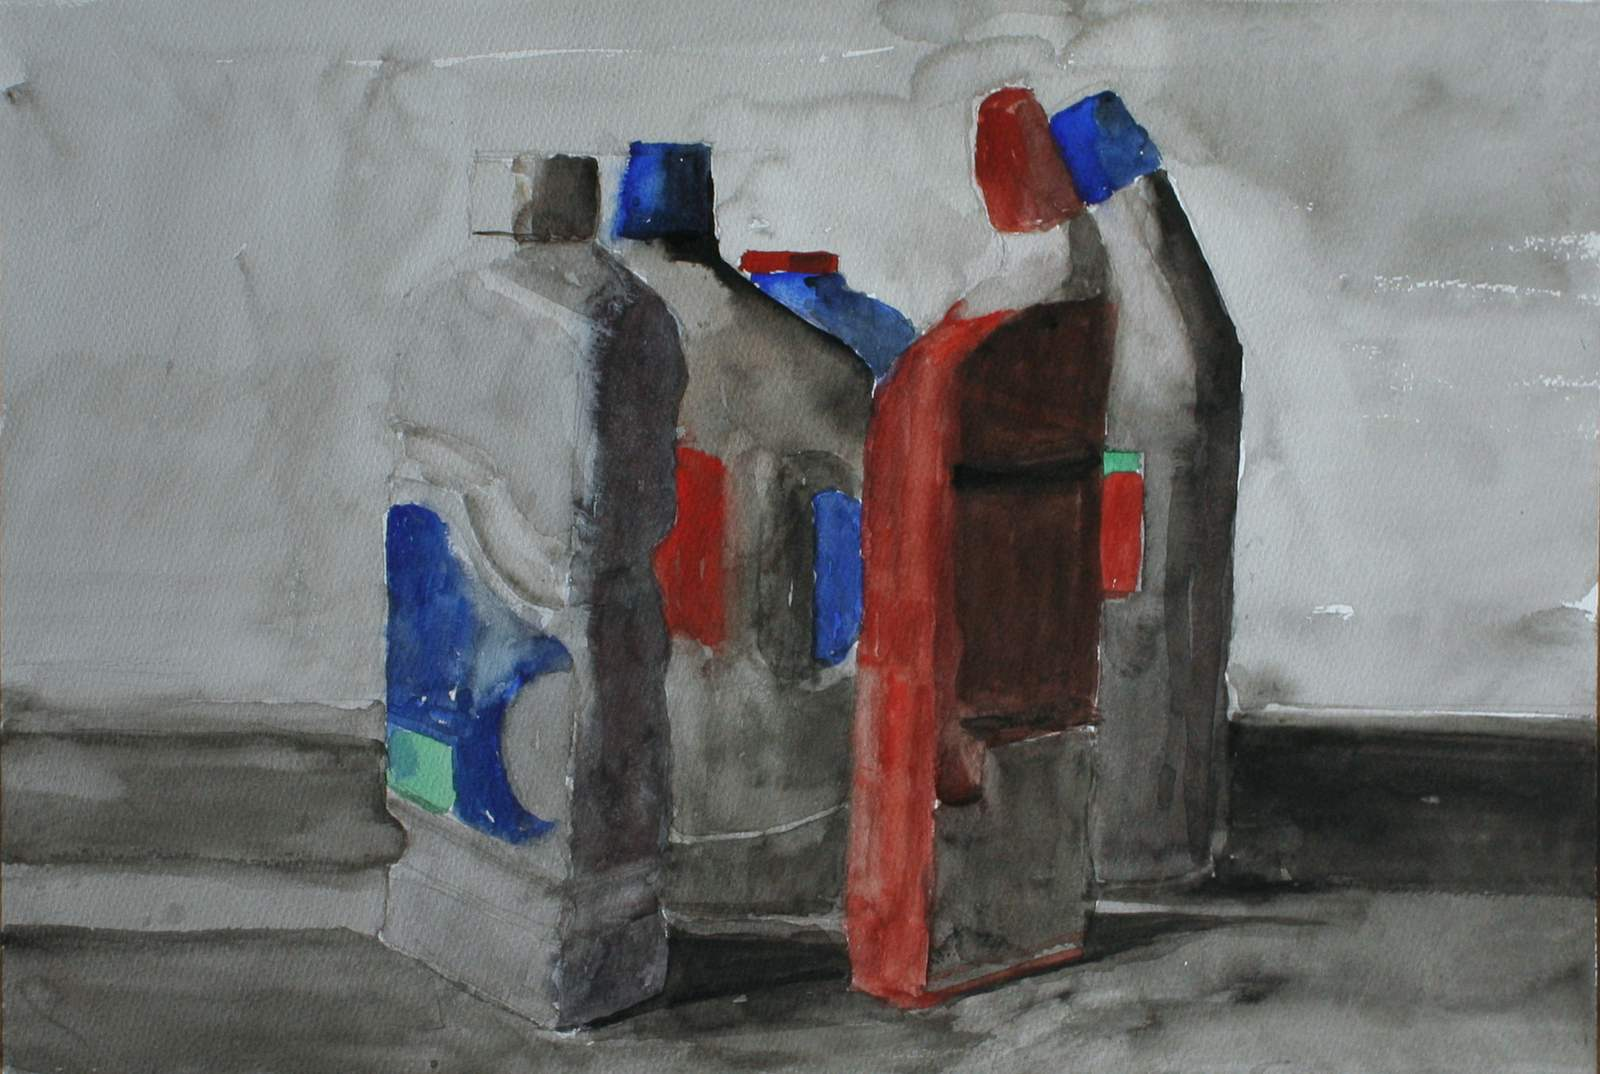 Watercolour five plastic bottles